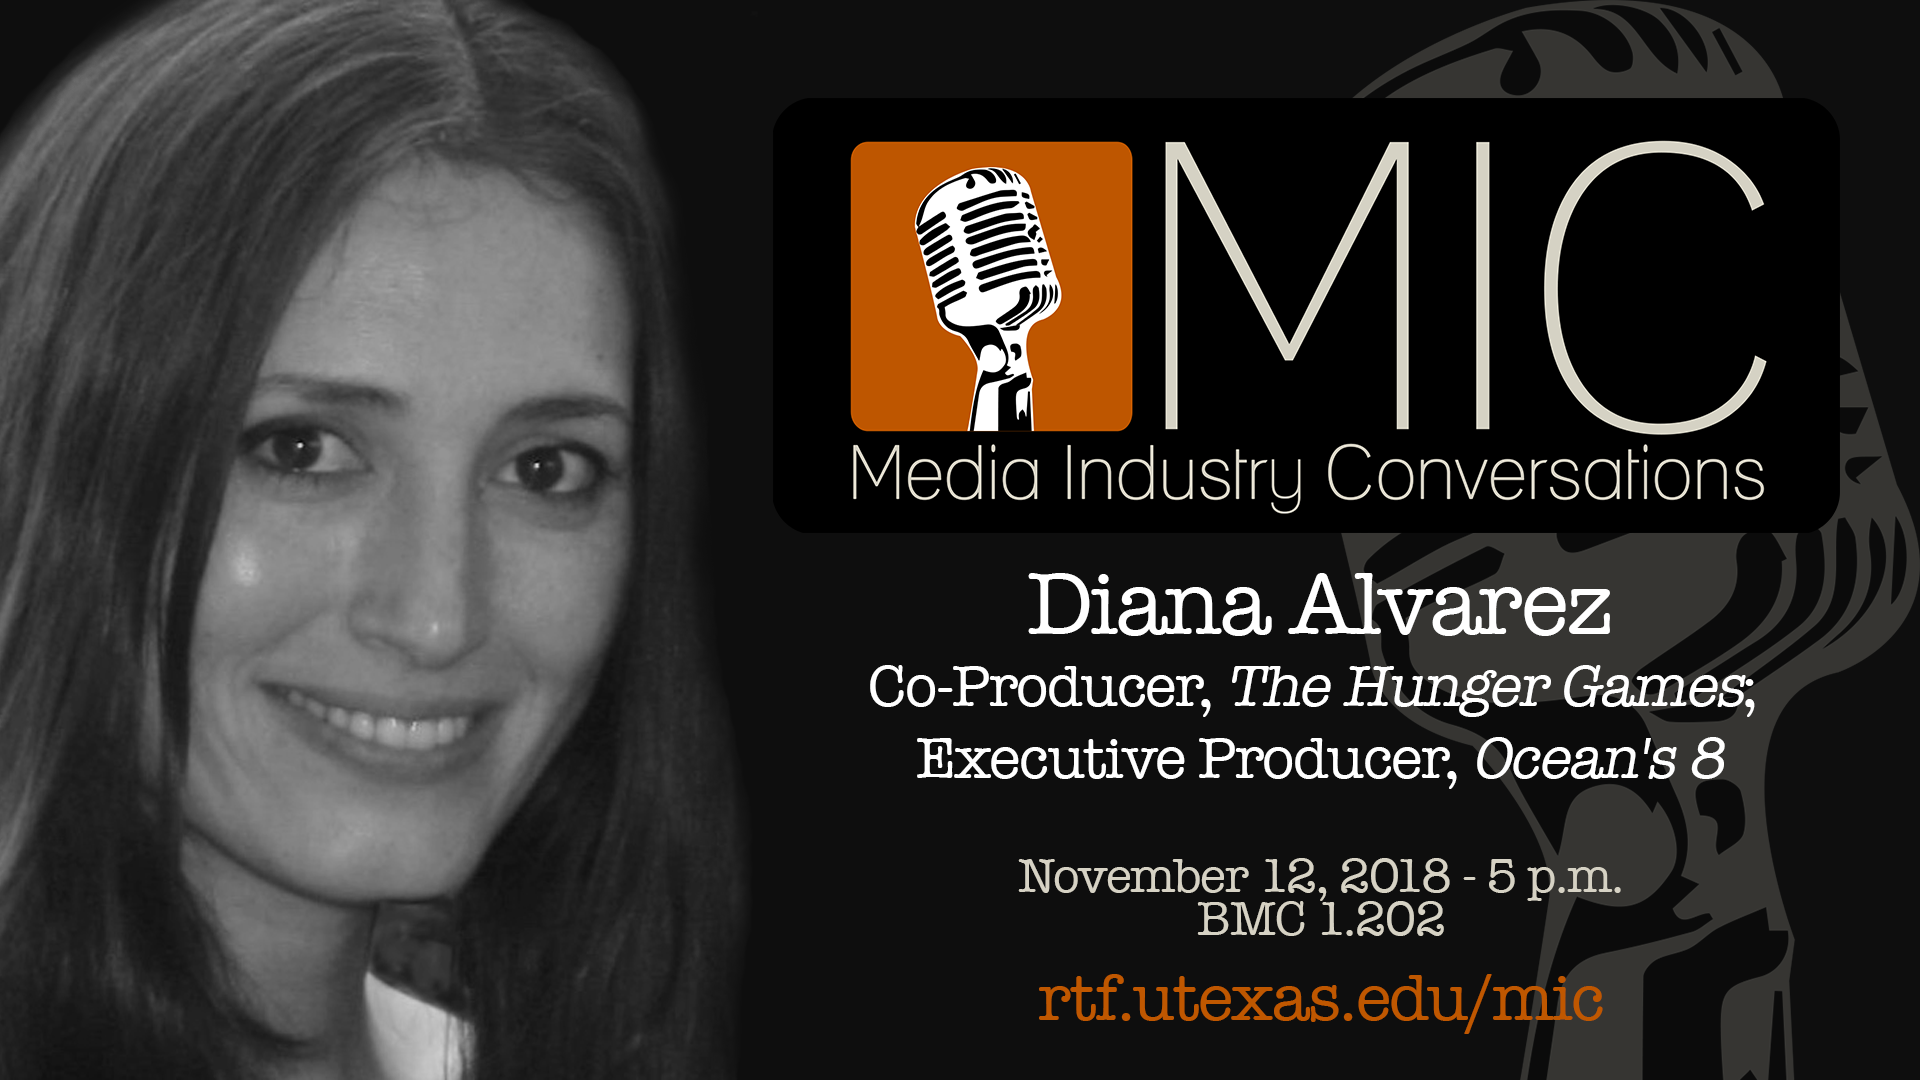 diana_alvarez_MIC_talk_november_12_2018_5pm_BMC_1.202